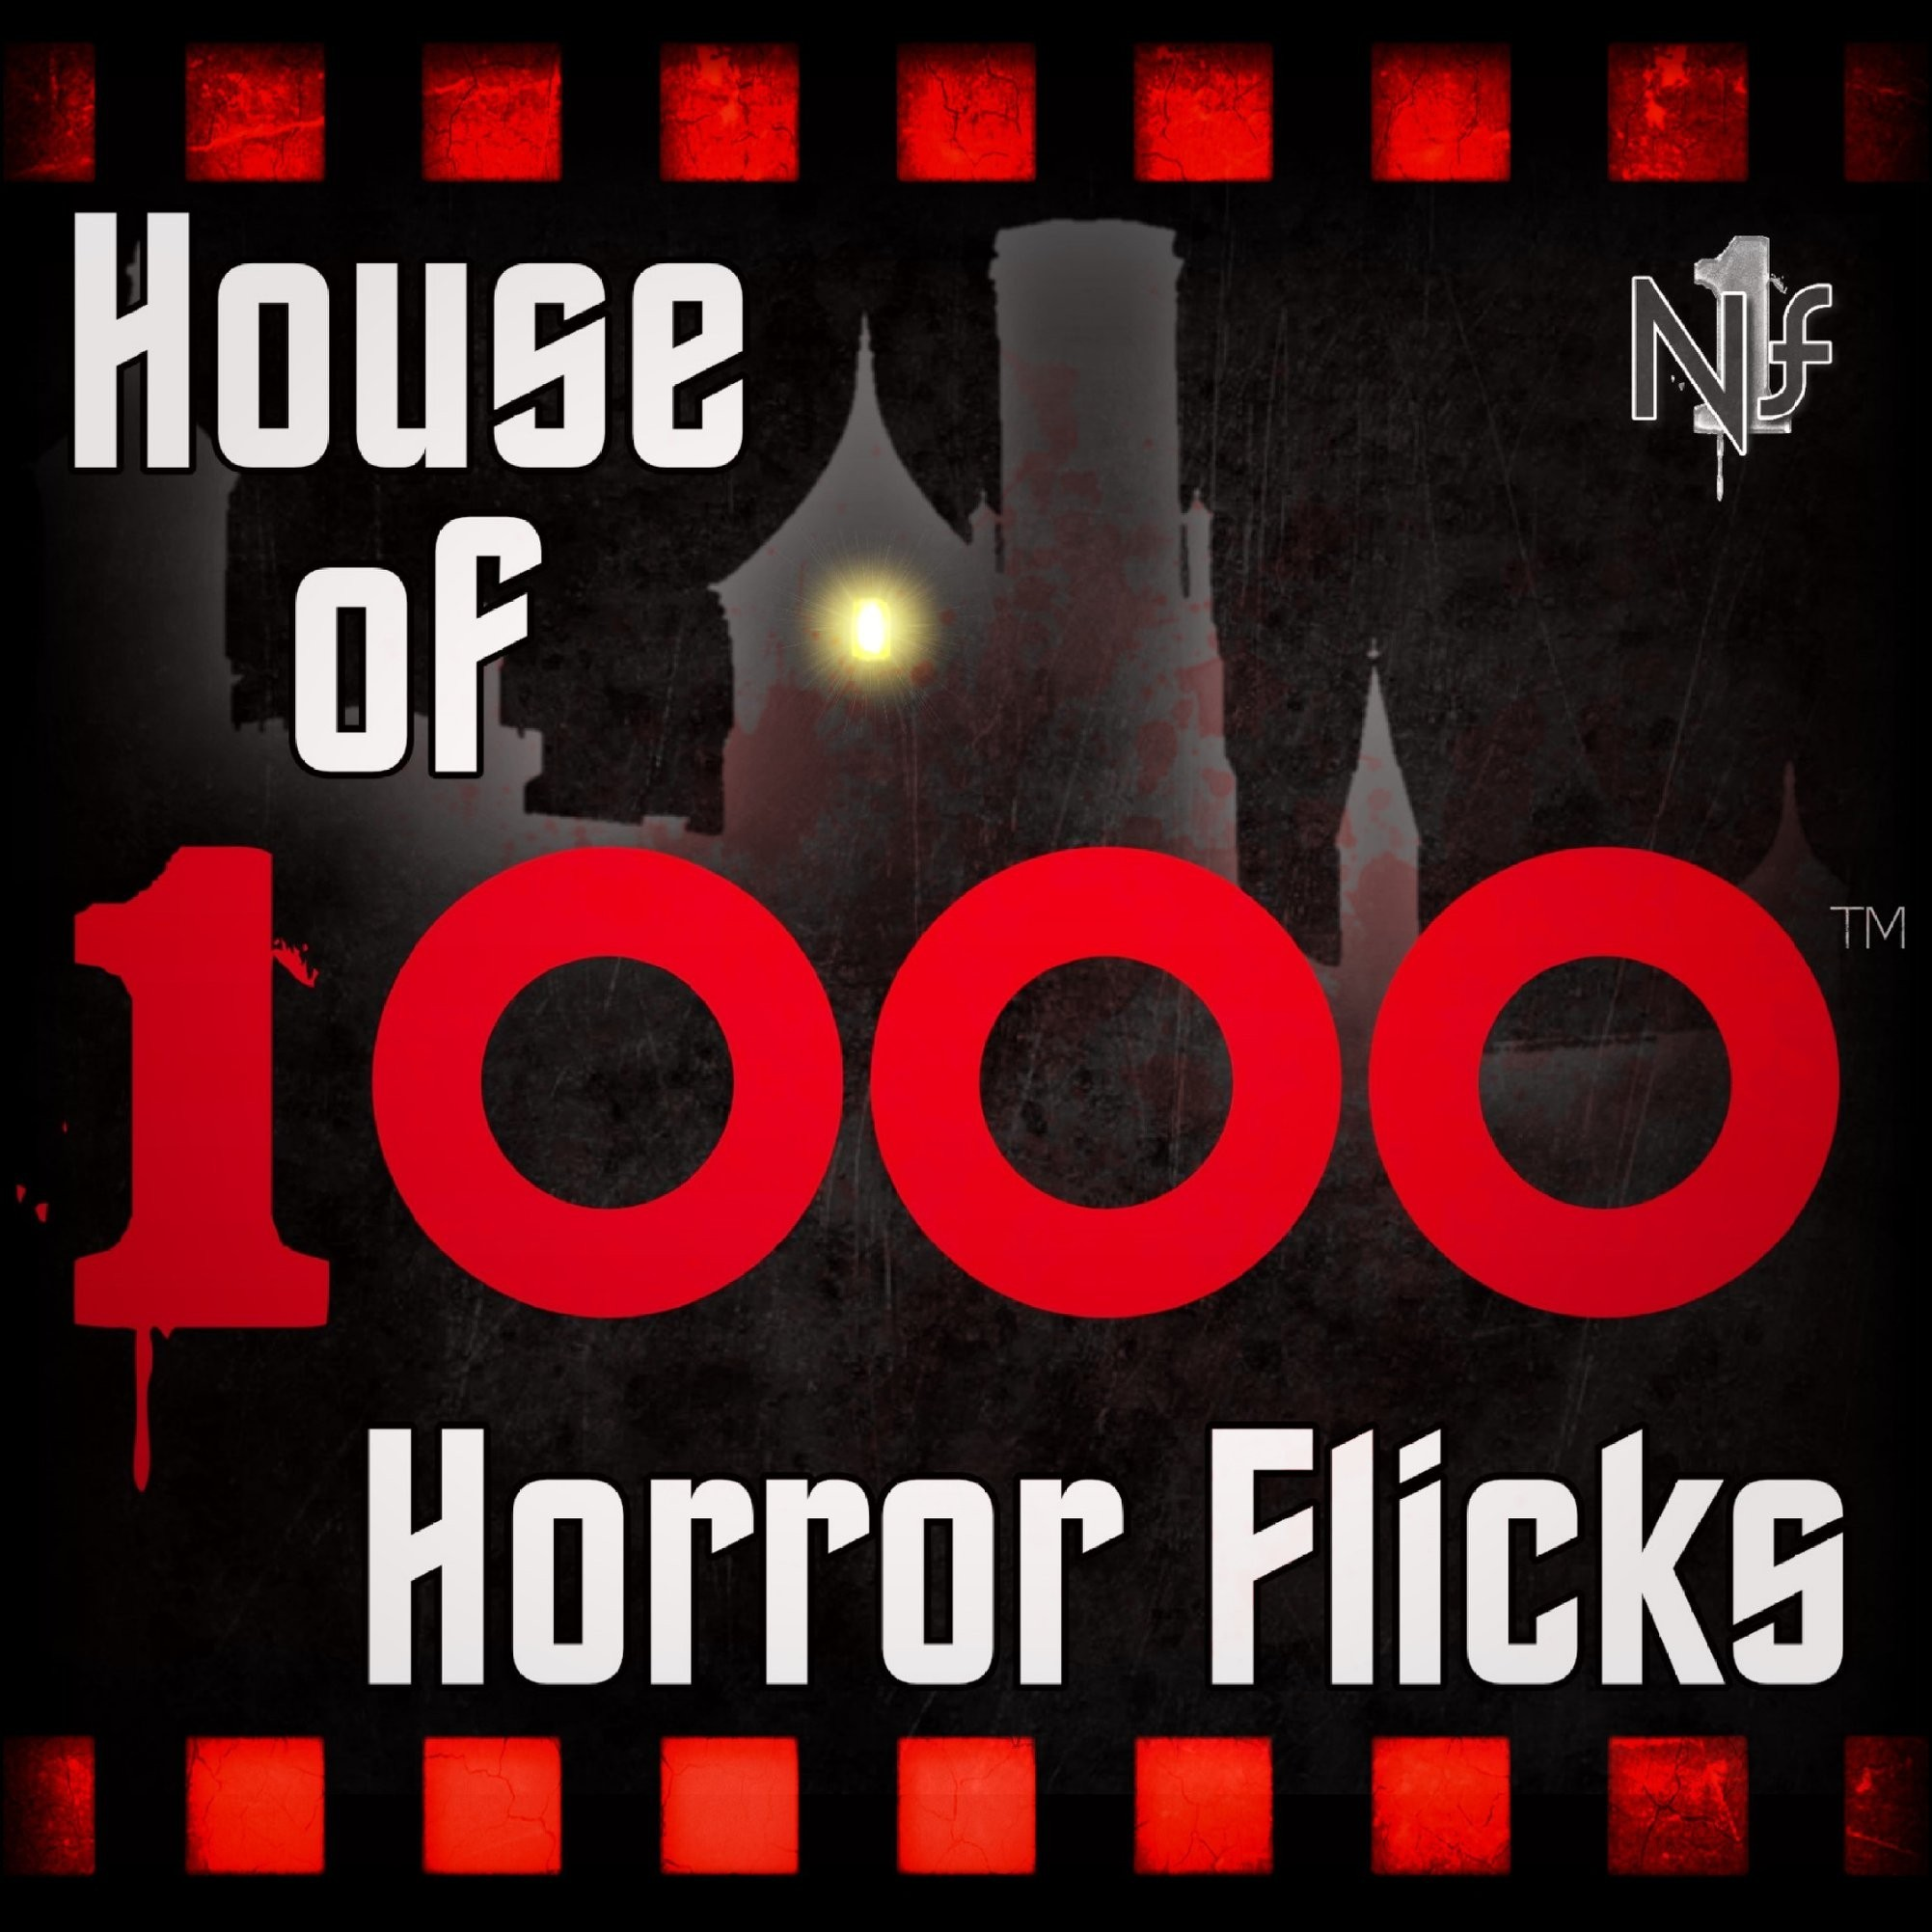 House of 1000 Horror Flicks on NovelScreenings.com